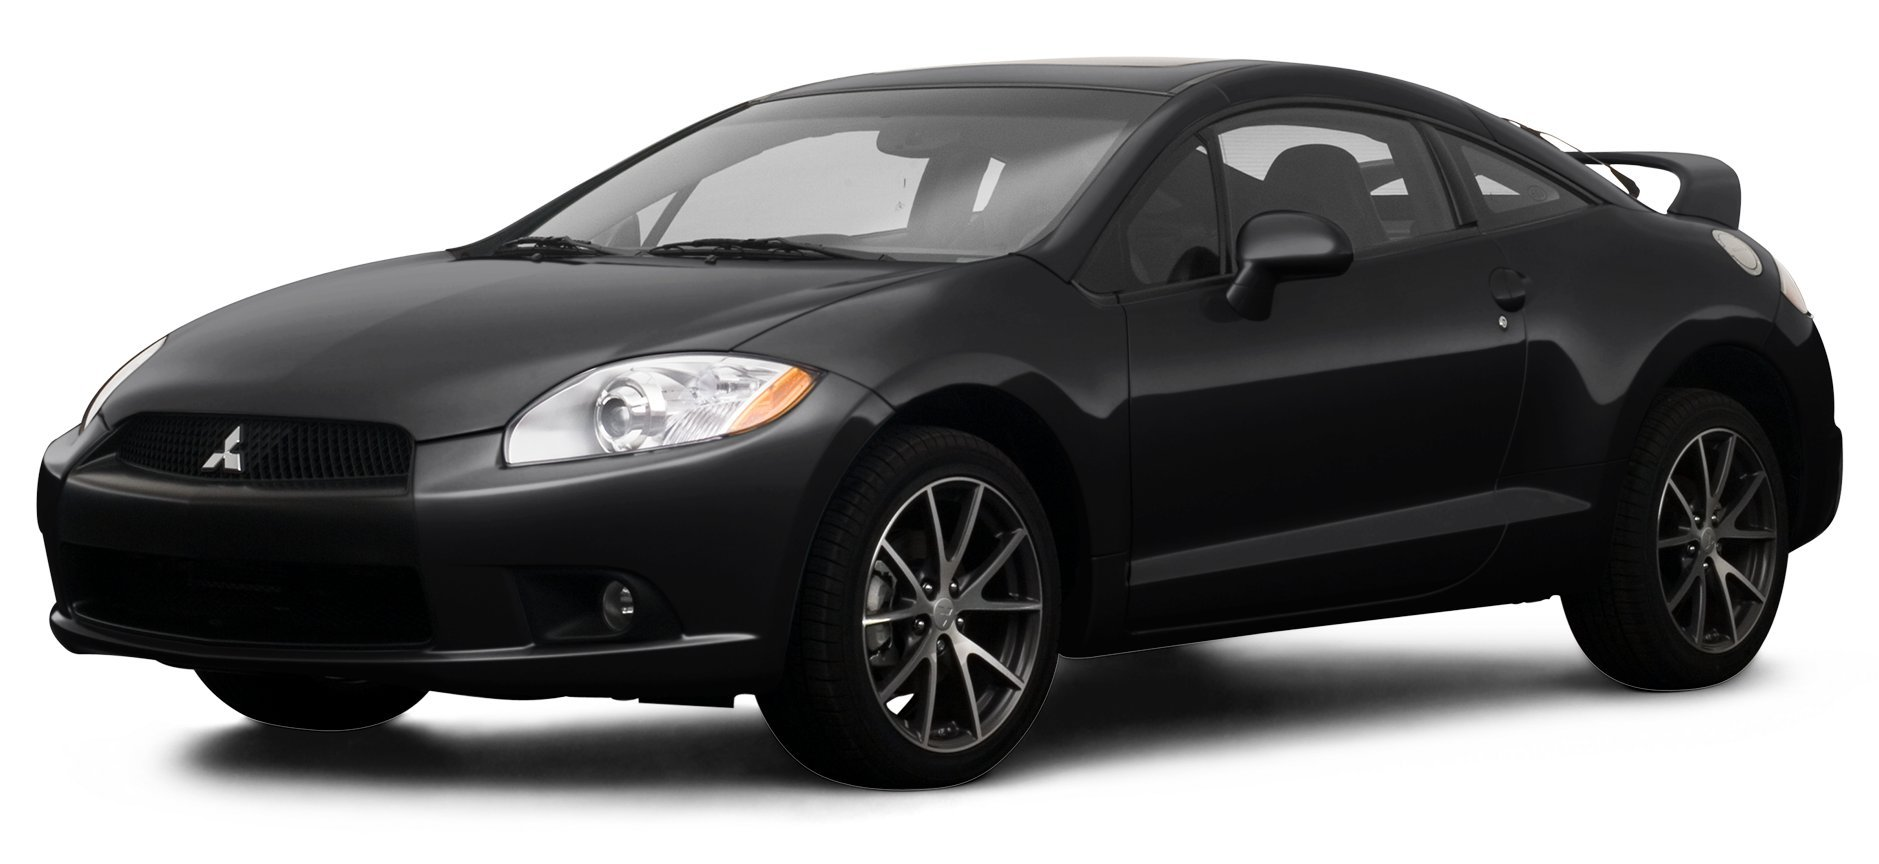 ... 2009 Mitsubishi Eclipse GT, 3-Door Coupe Automatic Transmission ...